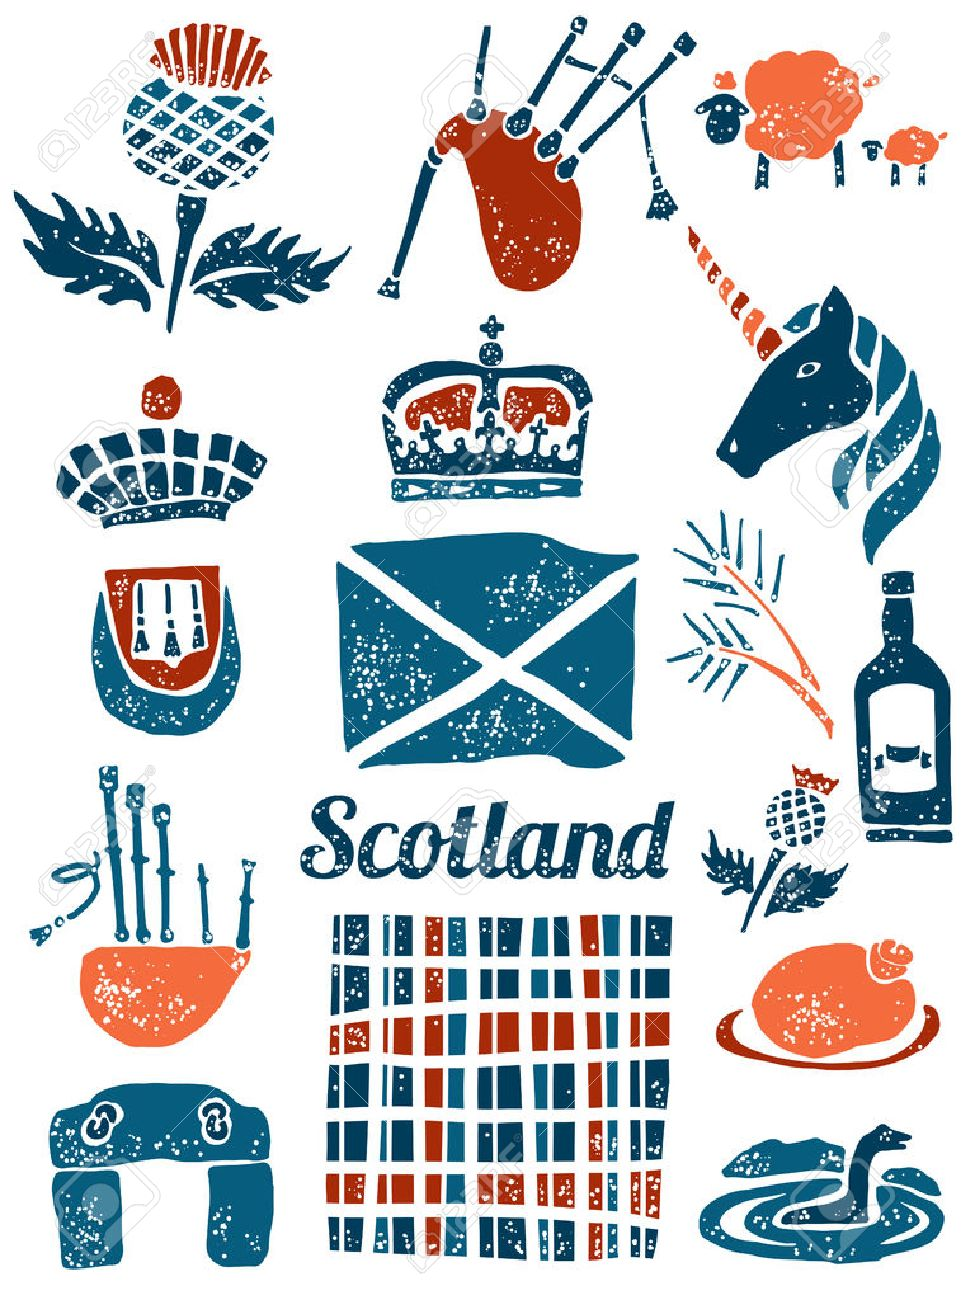 Symbols of scotland vector set in lino style royalty free cliparts symbols of scotland vector set in lino style stock vector 52223260 buycottarizona Image collections